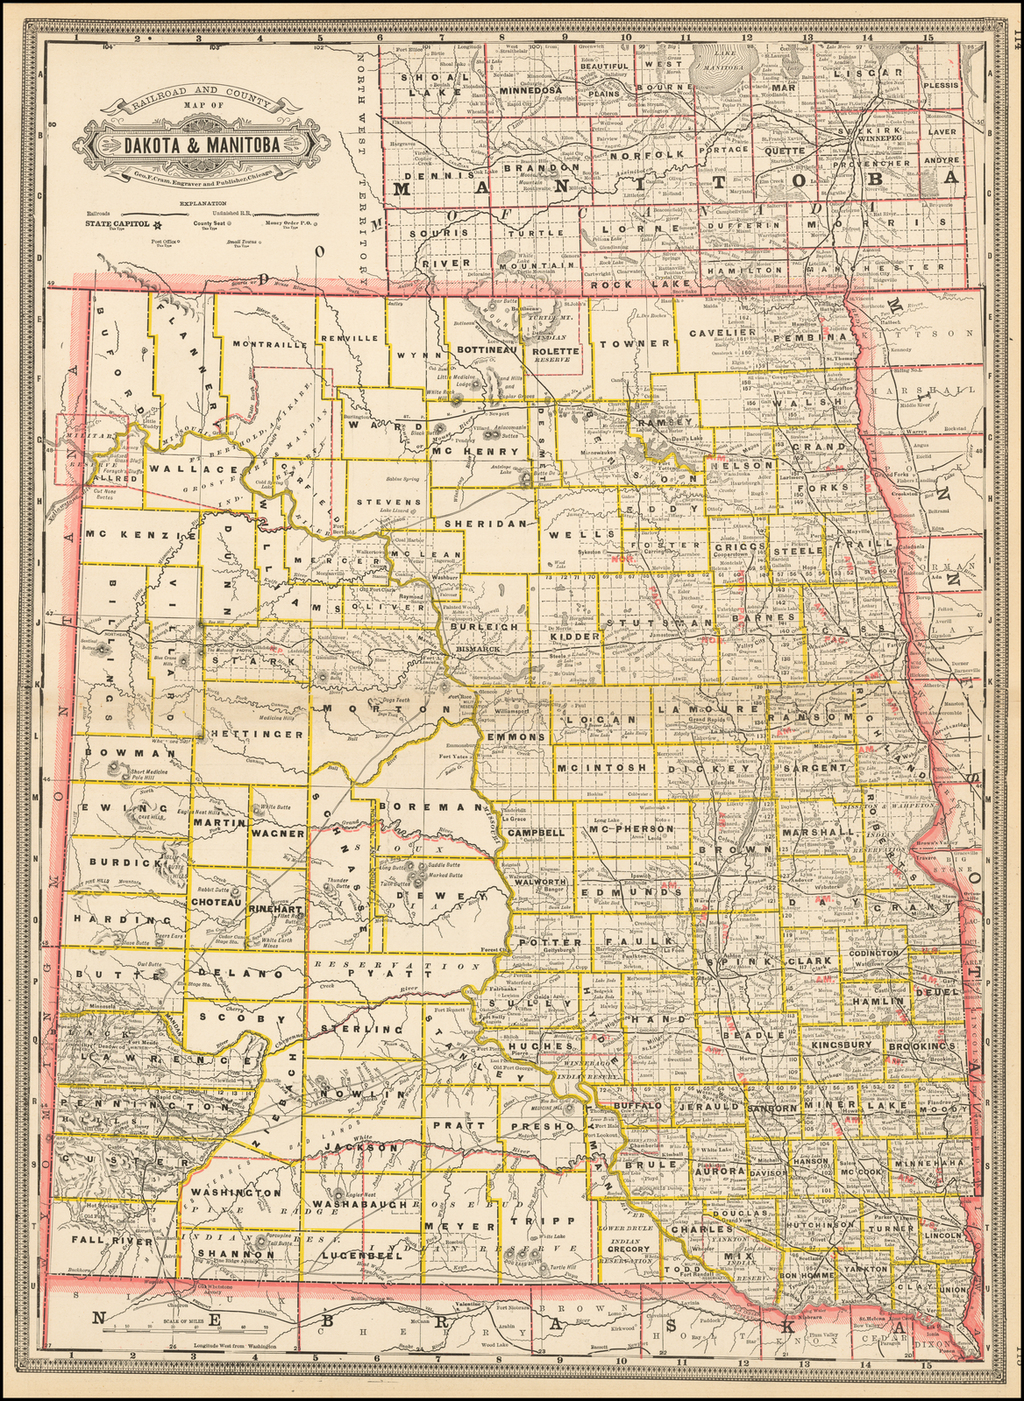 Railroad Map of Dakota & Manitoba By George F. Cram